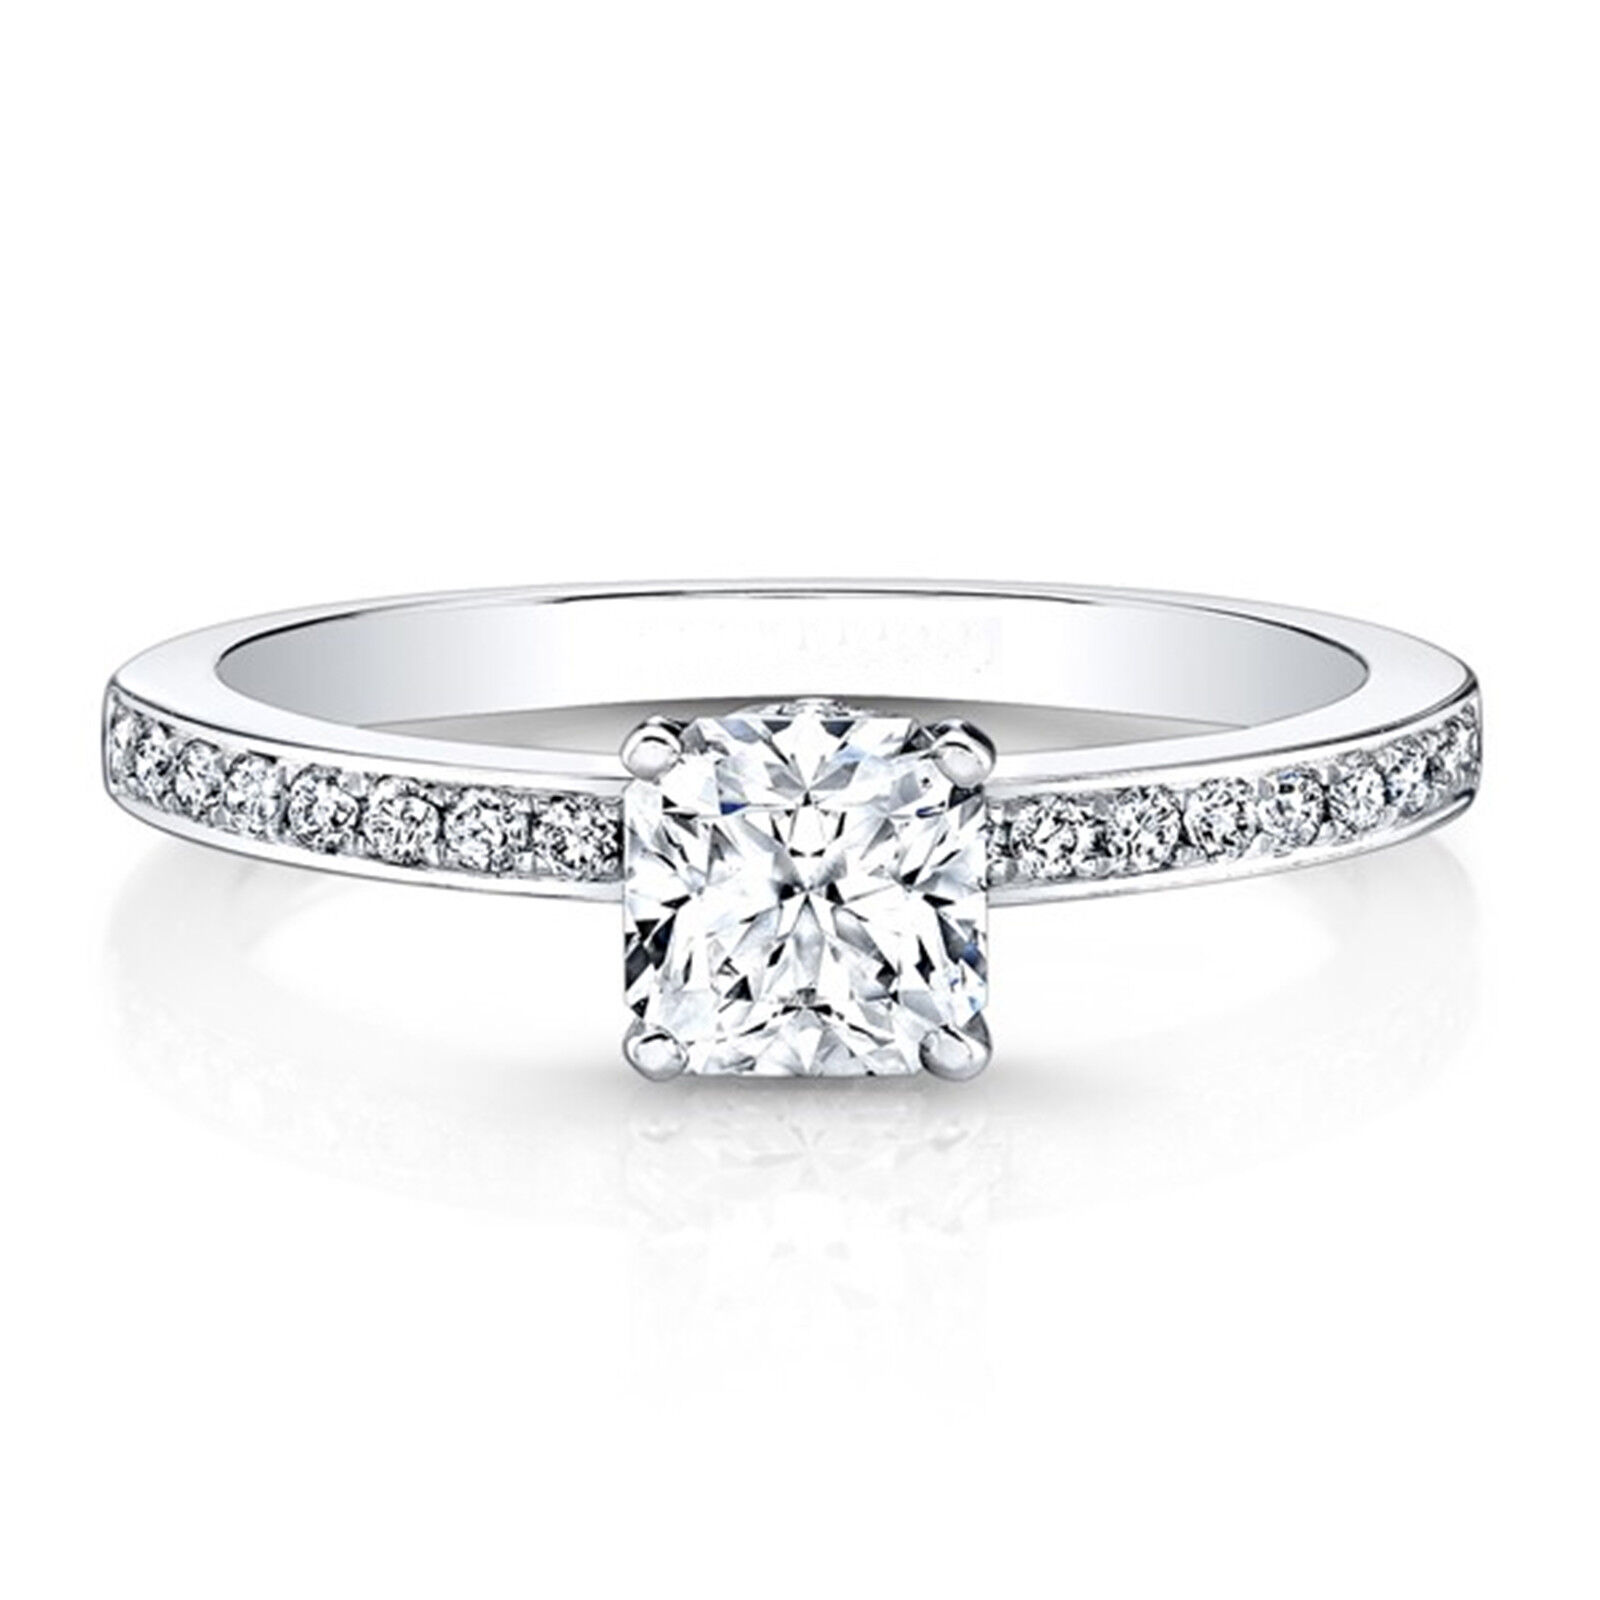 0.56 Carat Real Round Diamond Ring Solid 14K White gold Rings Size 5 9 8